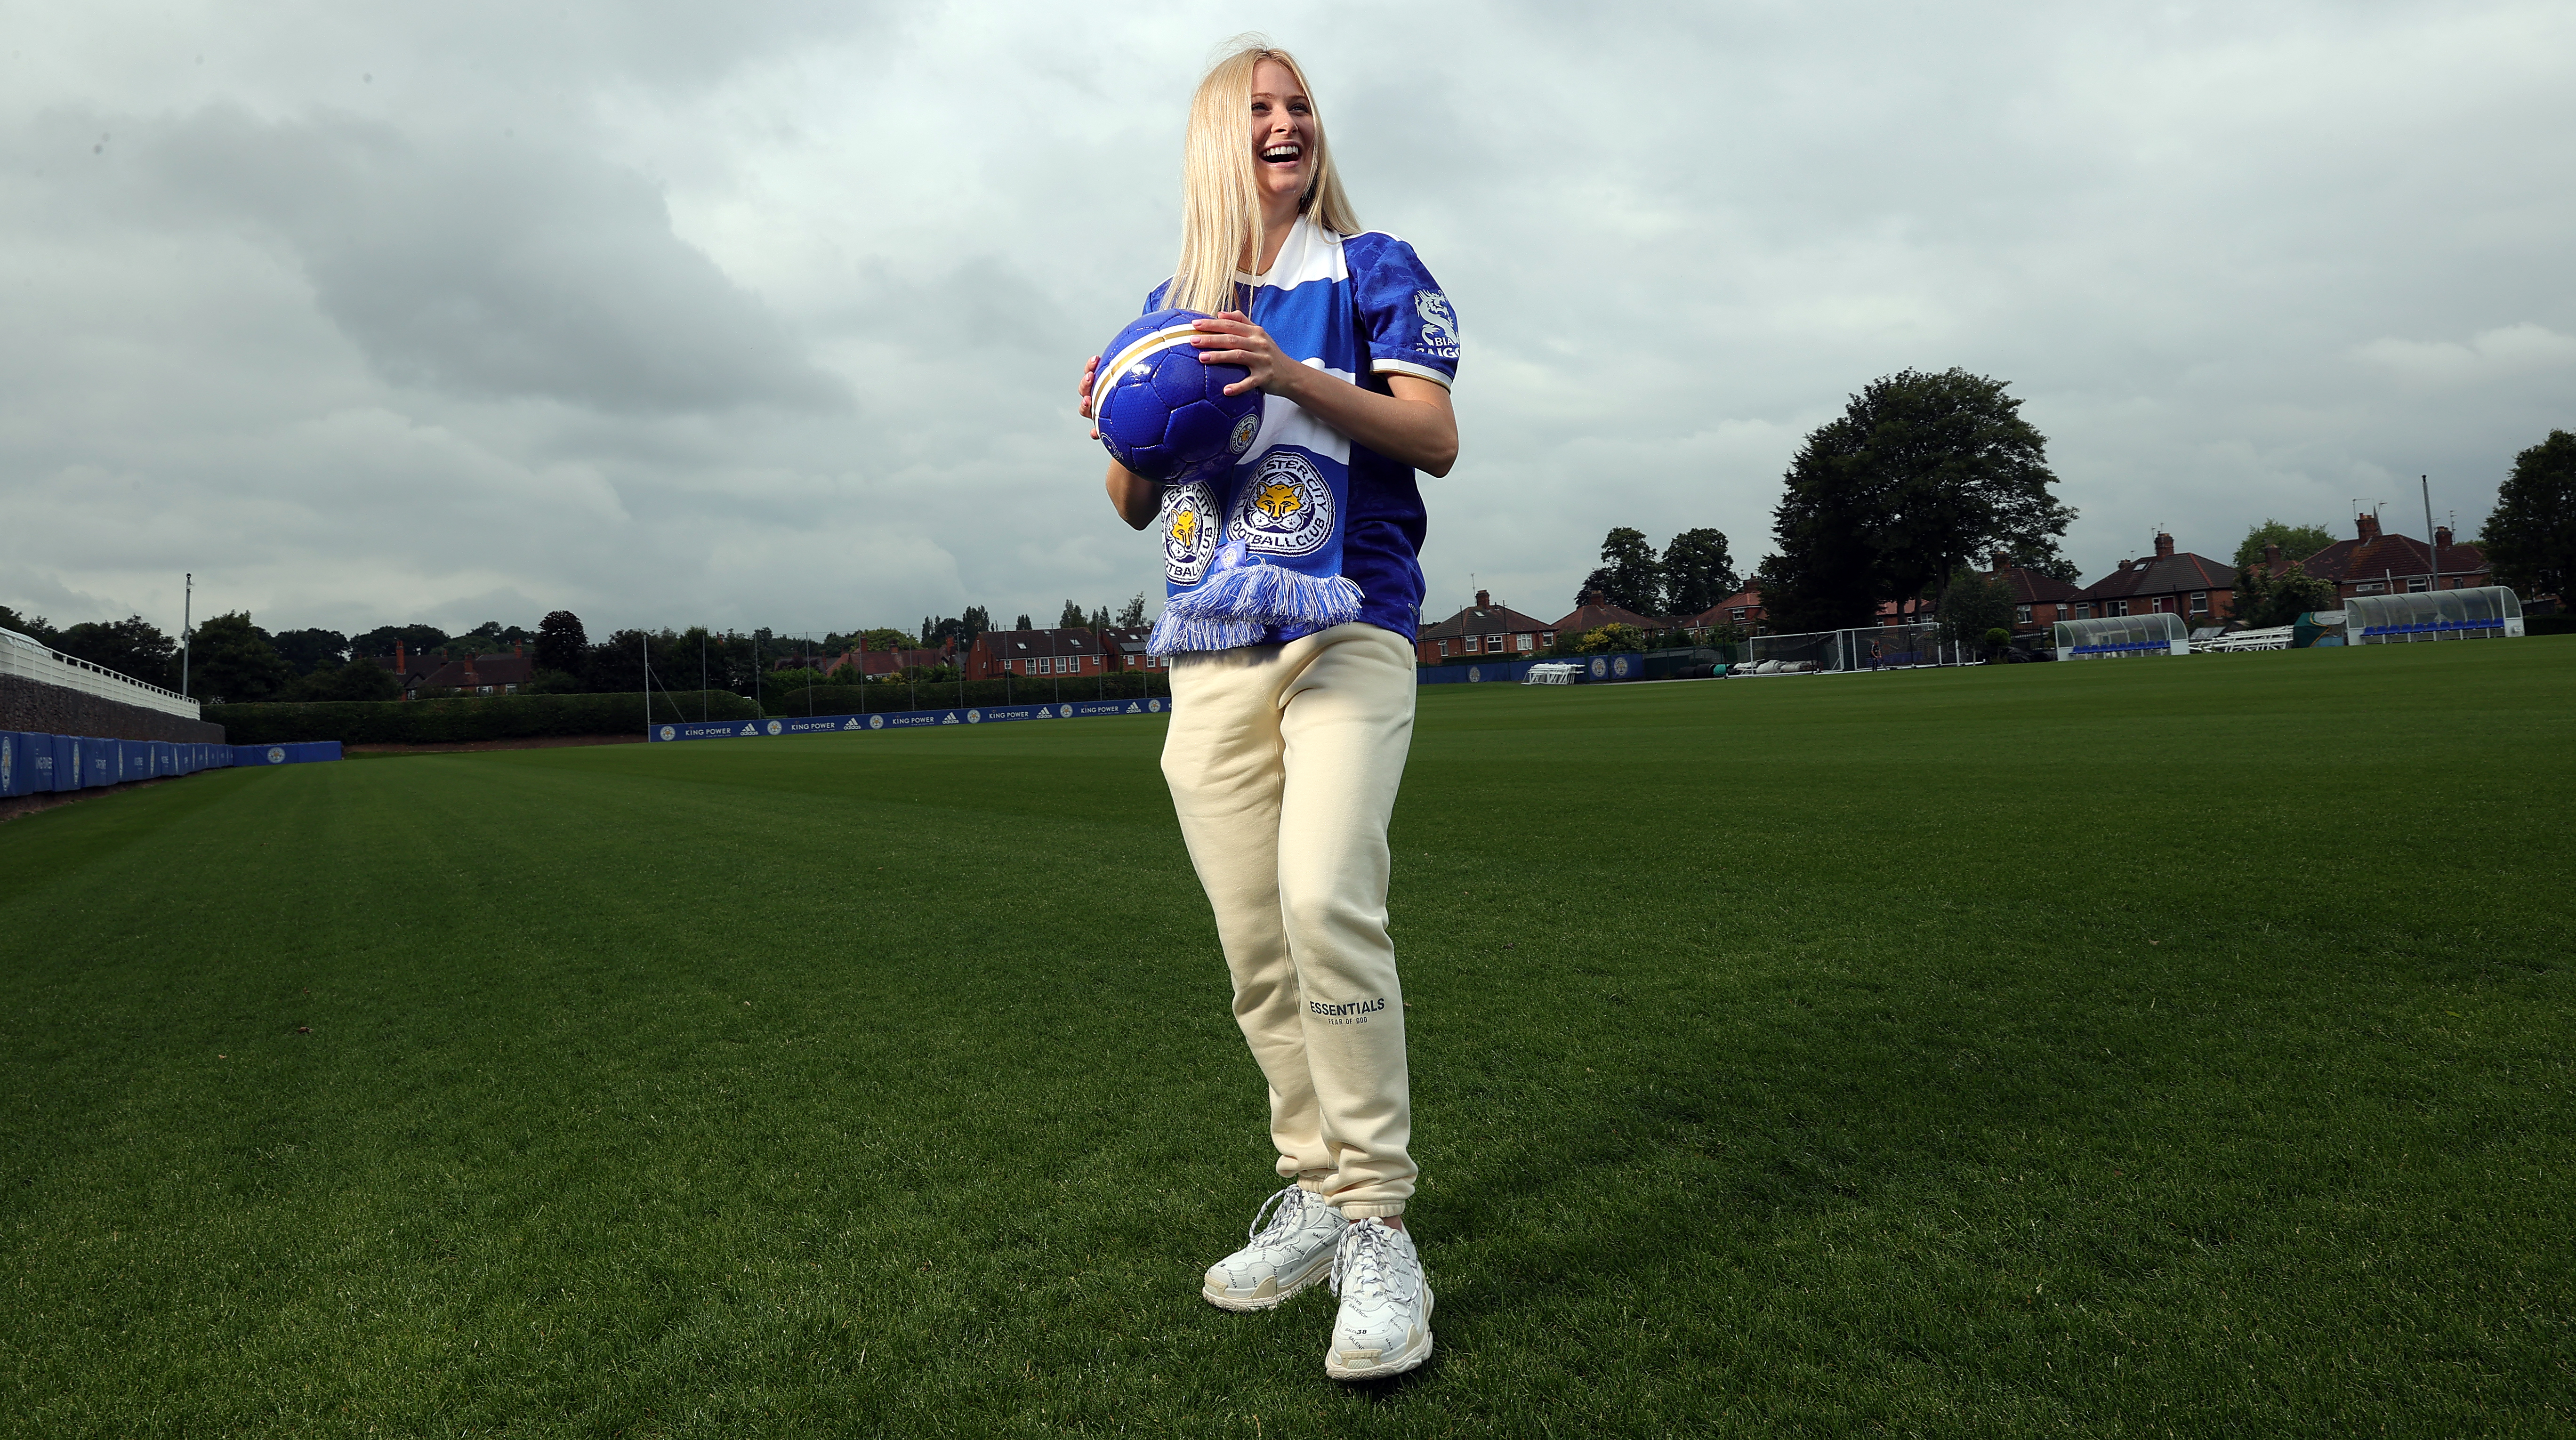 Leicester A Great Place To Grow, Says Pike